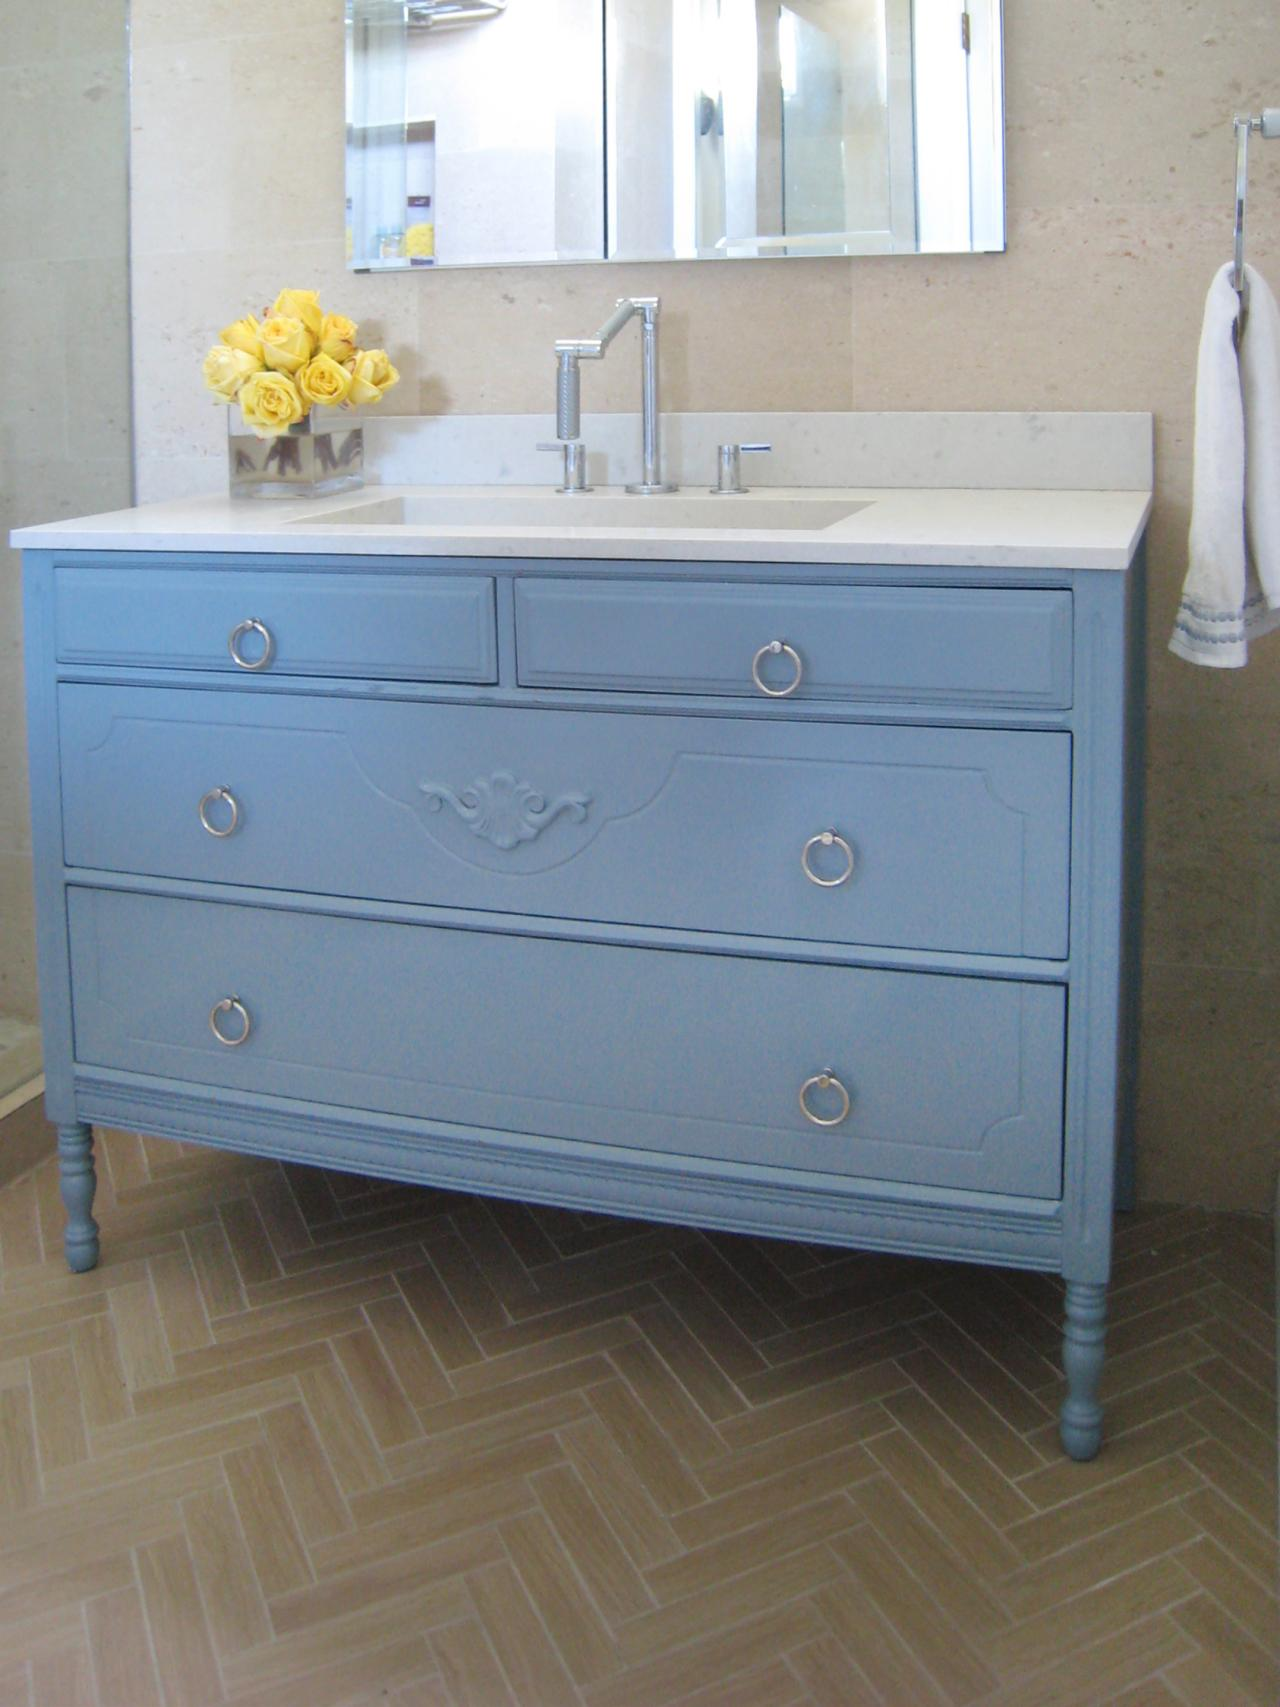 Stores that sell bathroom vanities - How To Turn A Cabinet Into A Bathroom Vanity